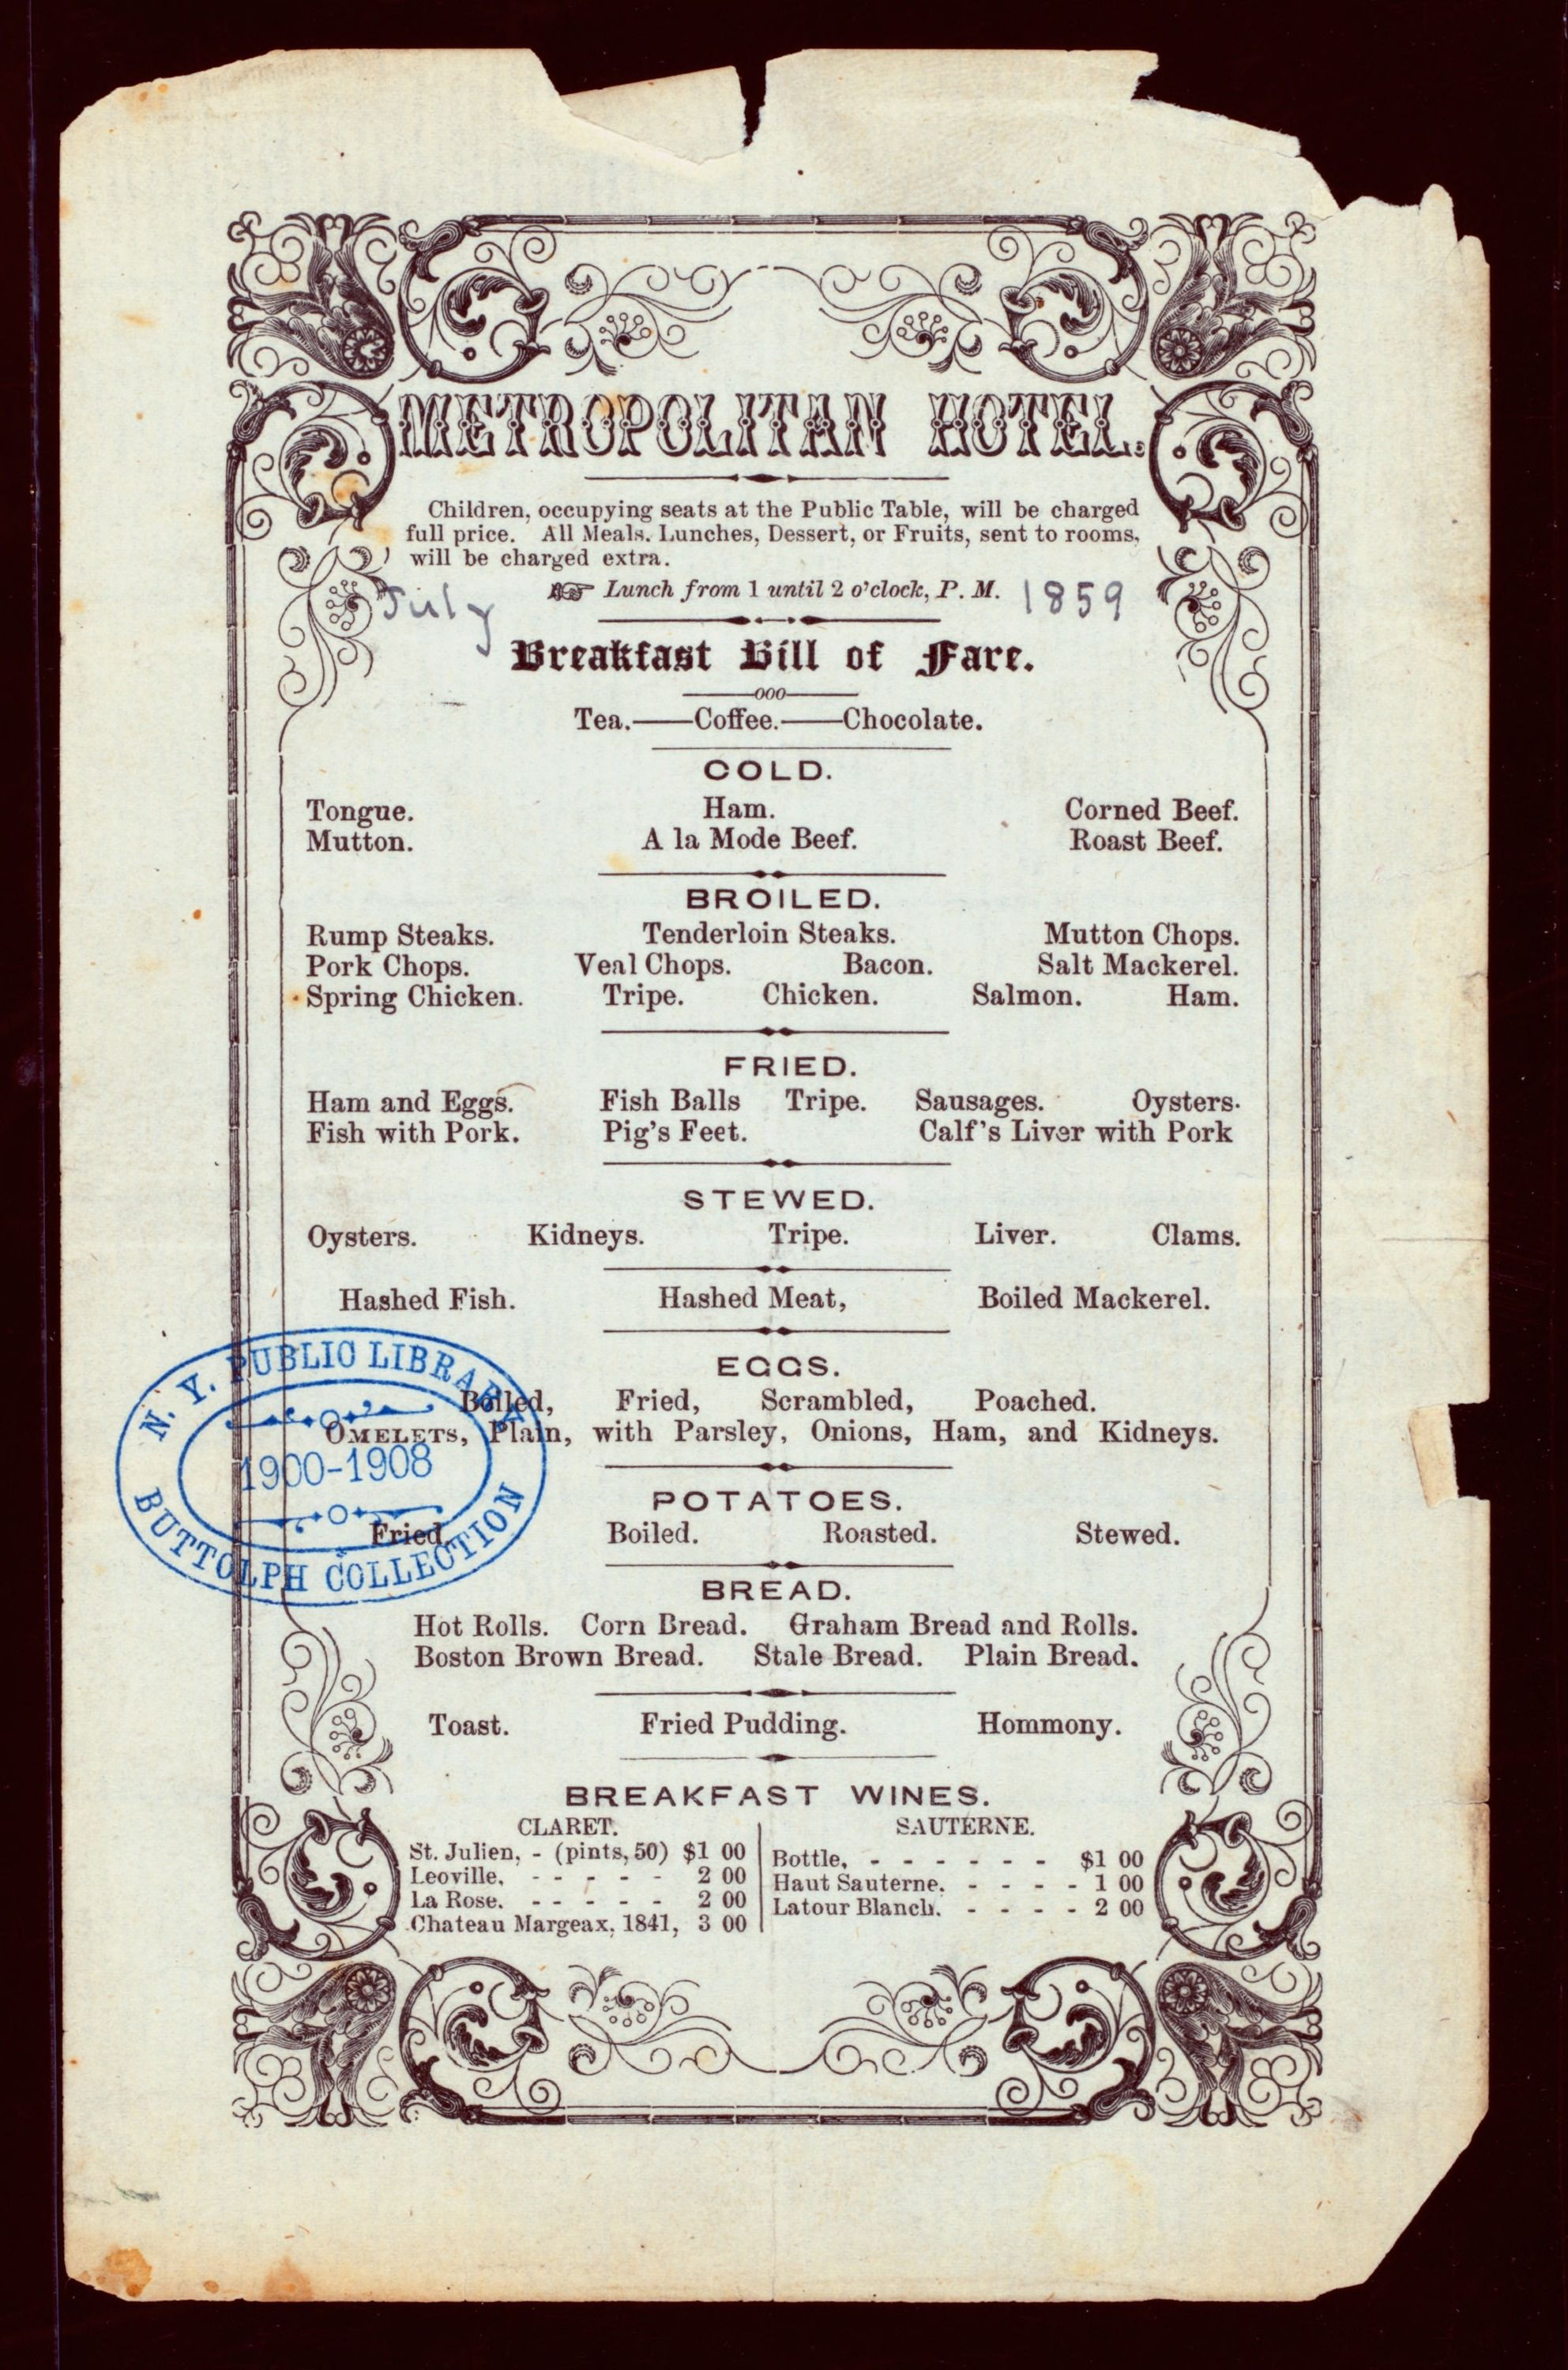 10 awesome vintage menus from the New York Public Library's Digital Collection #menus